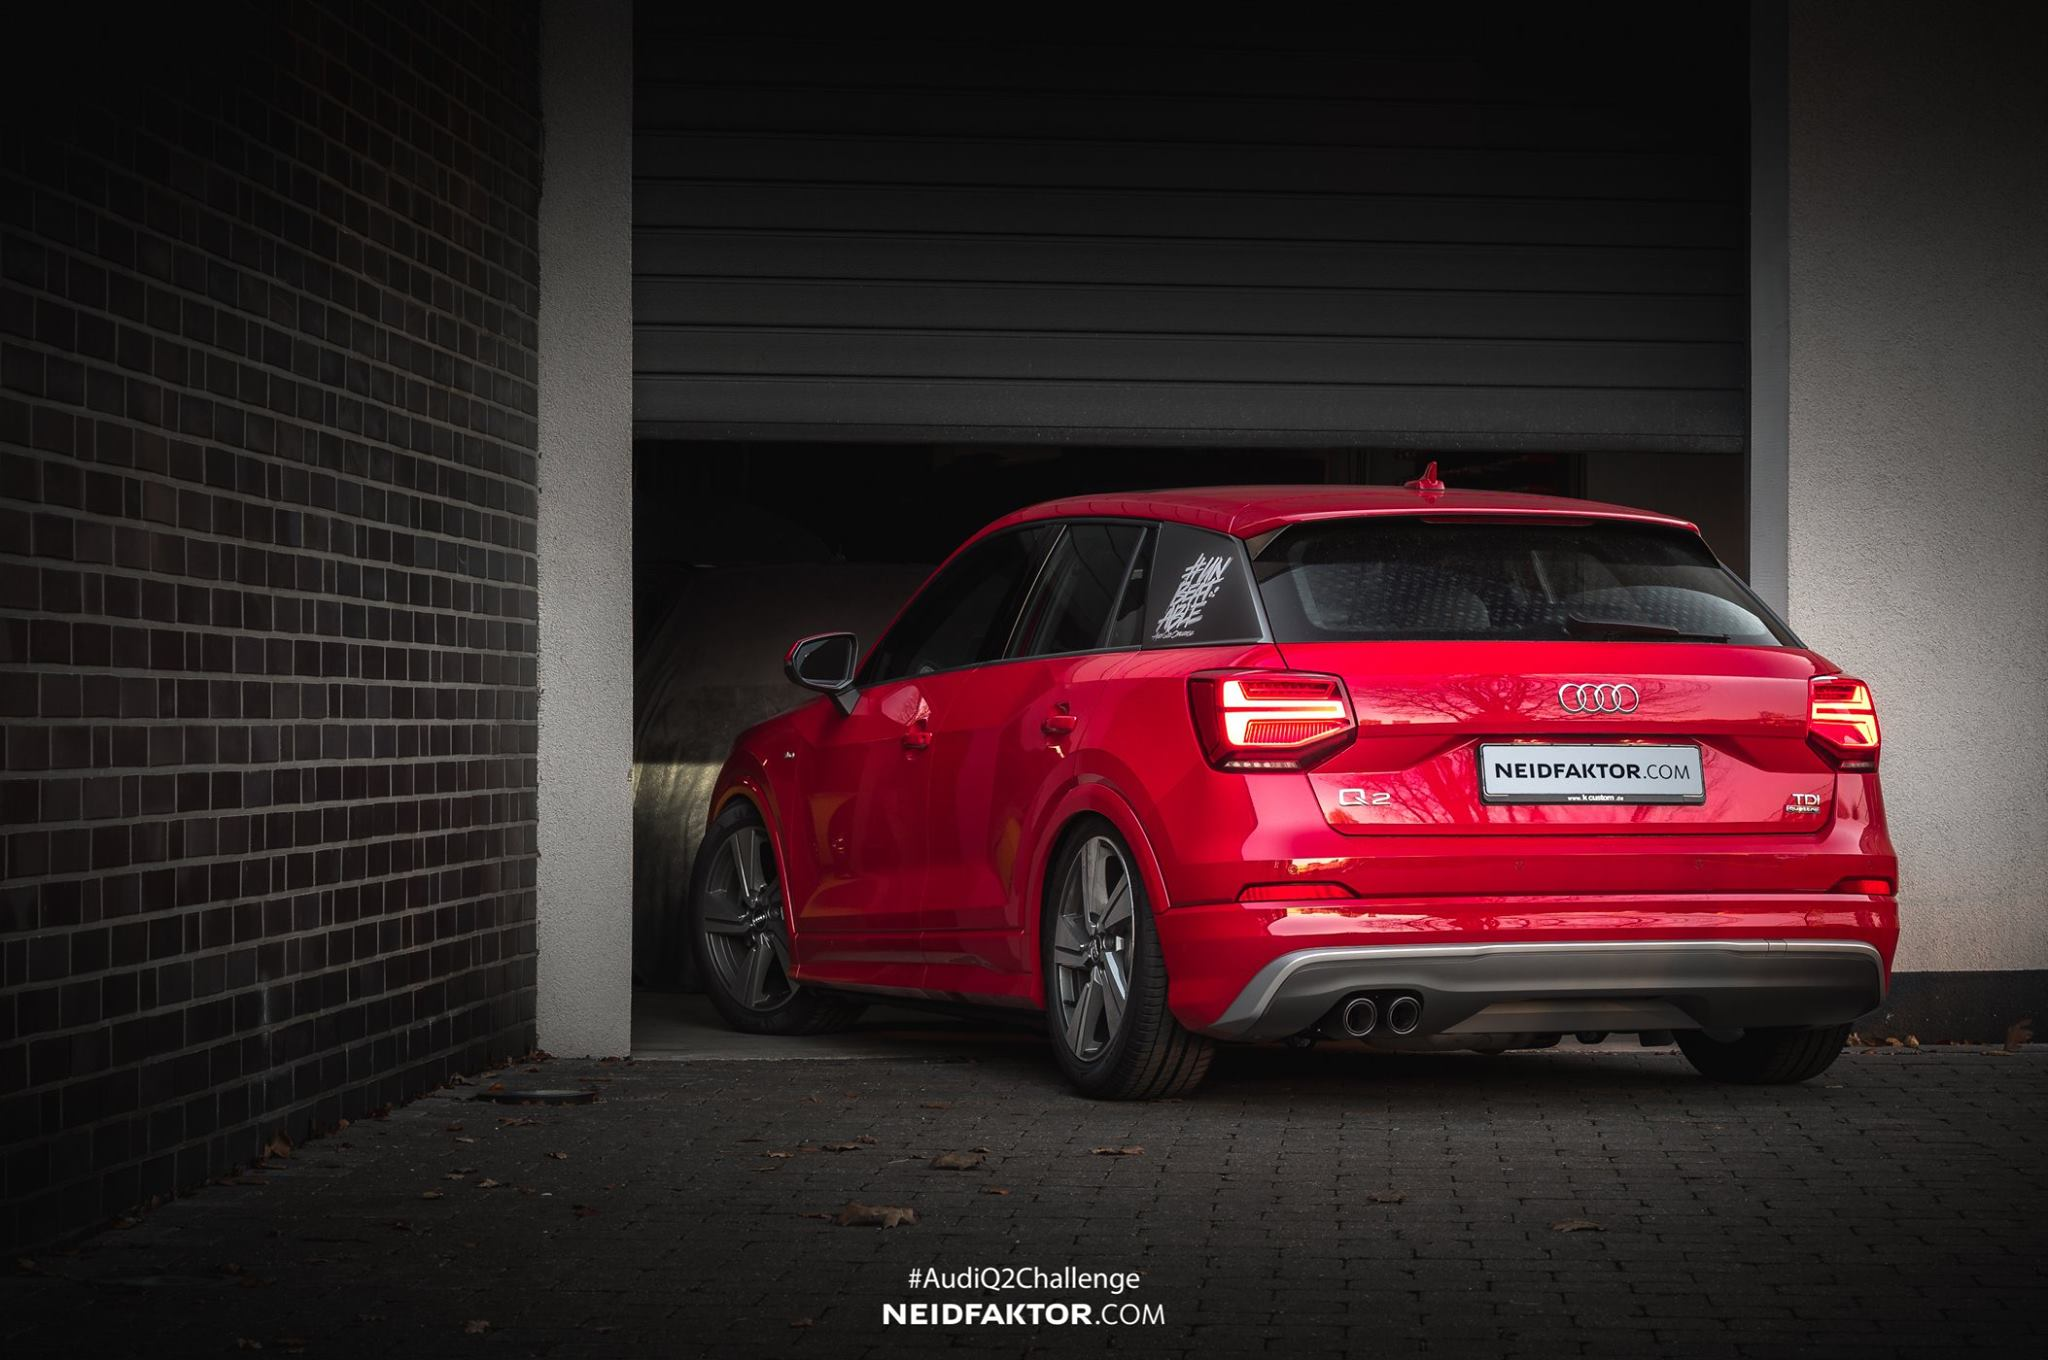 audi q2 gets lowered on custom wheels looks like a hatch autoevolution. Black Bedroom Furniture Sets. Home Design Ideas